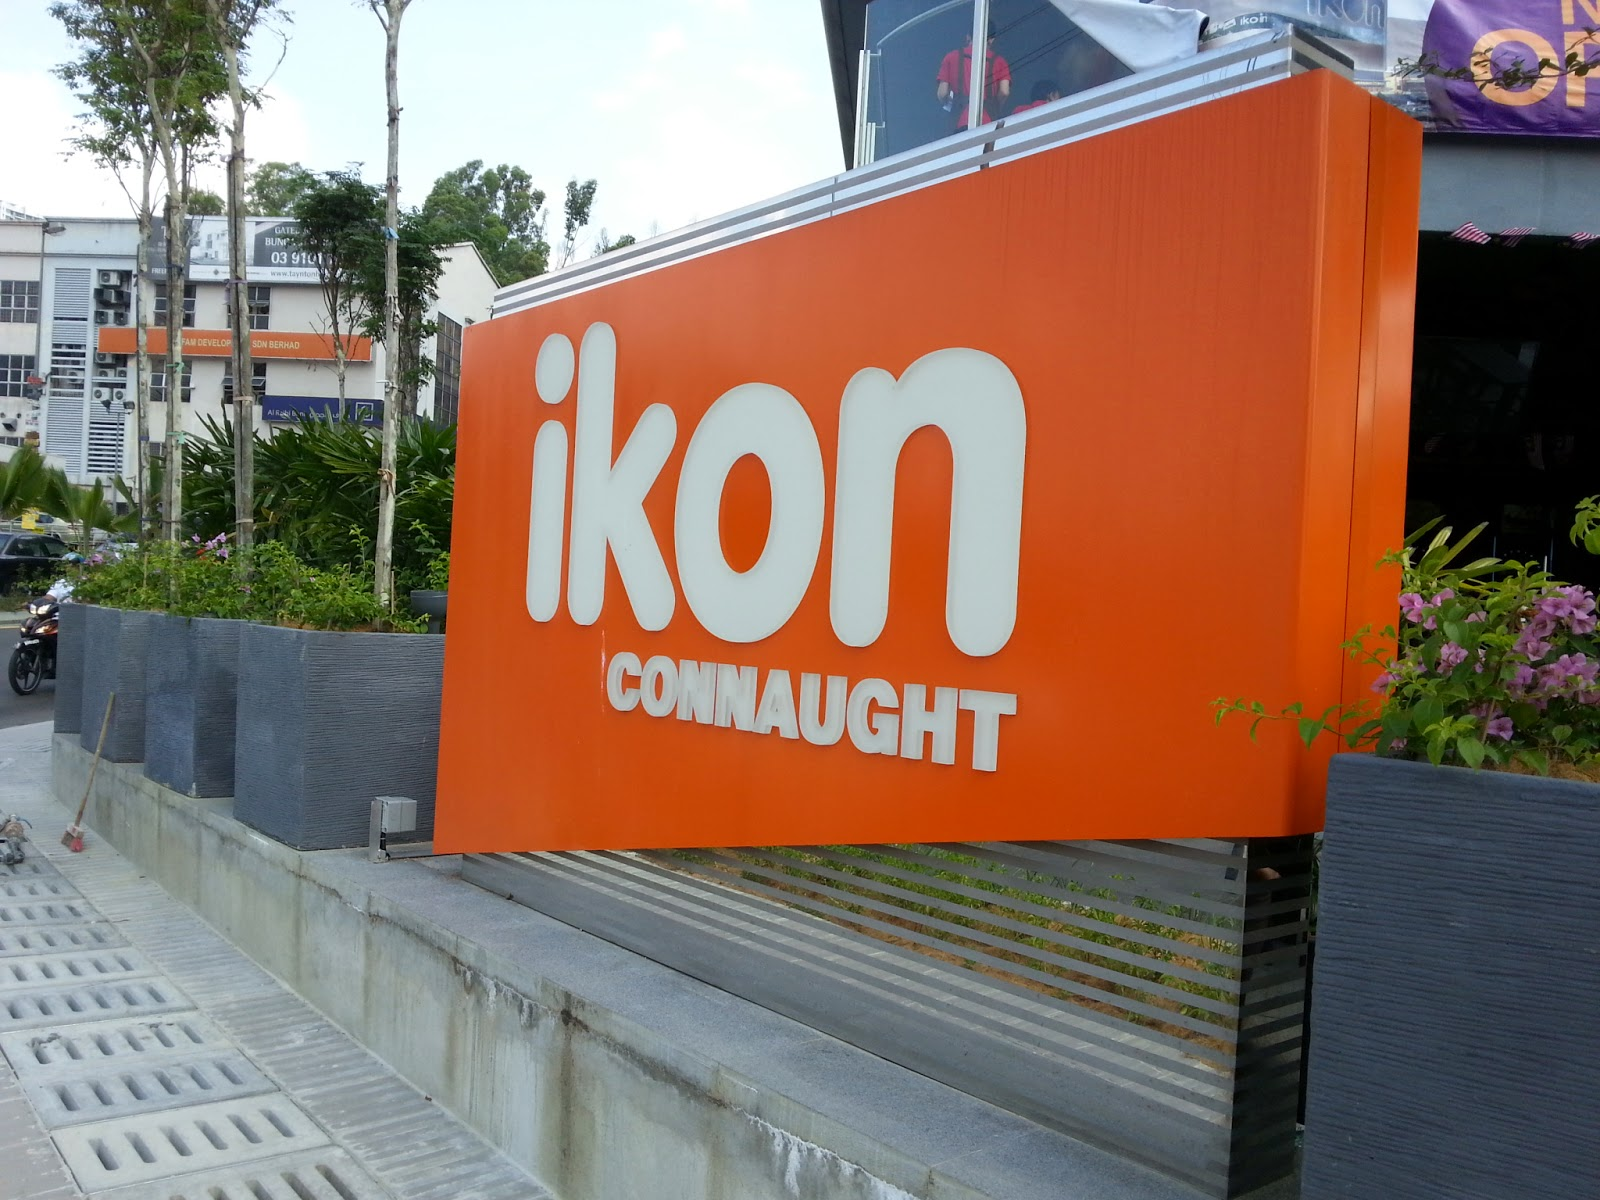 Ikon connaught